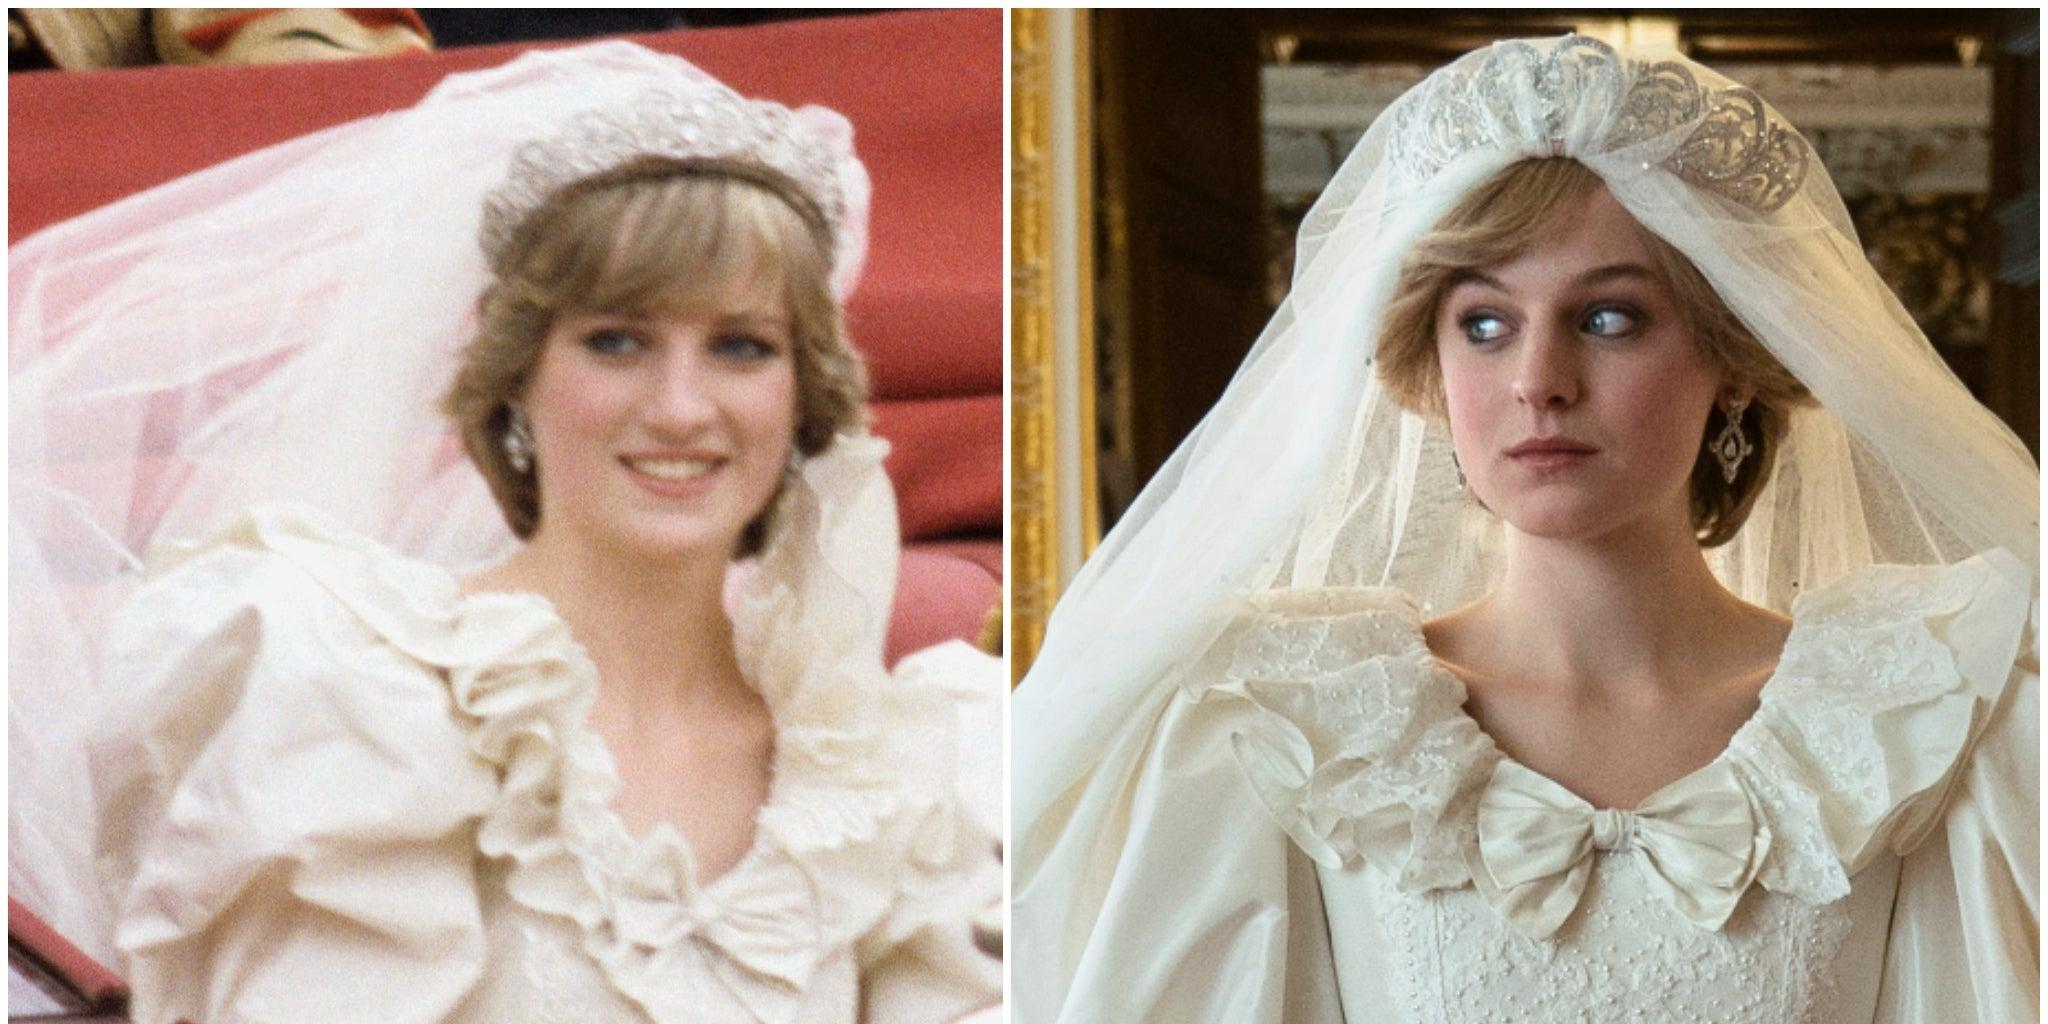 Princess Diana - Here's How 'The Crown' Recreated Her Most Memorable Looks Including Her Wedding Dress!